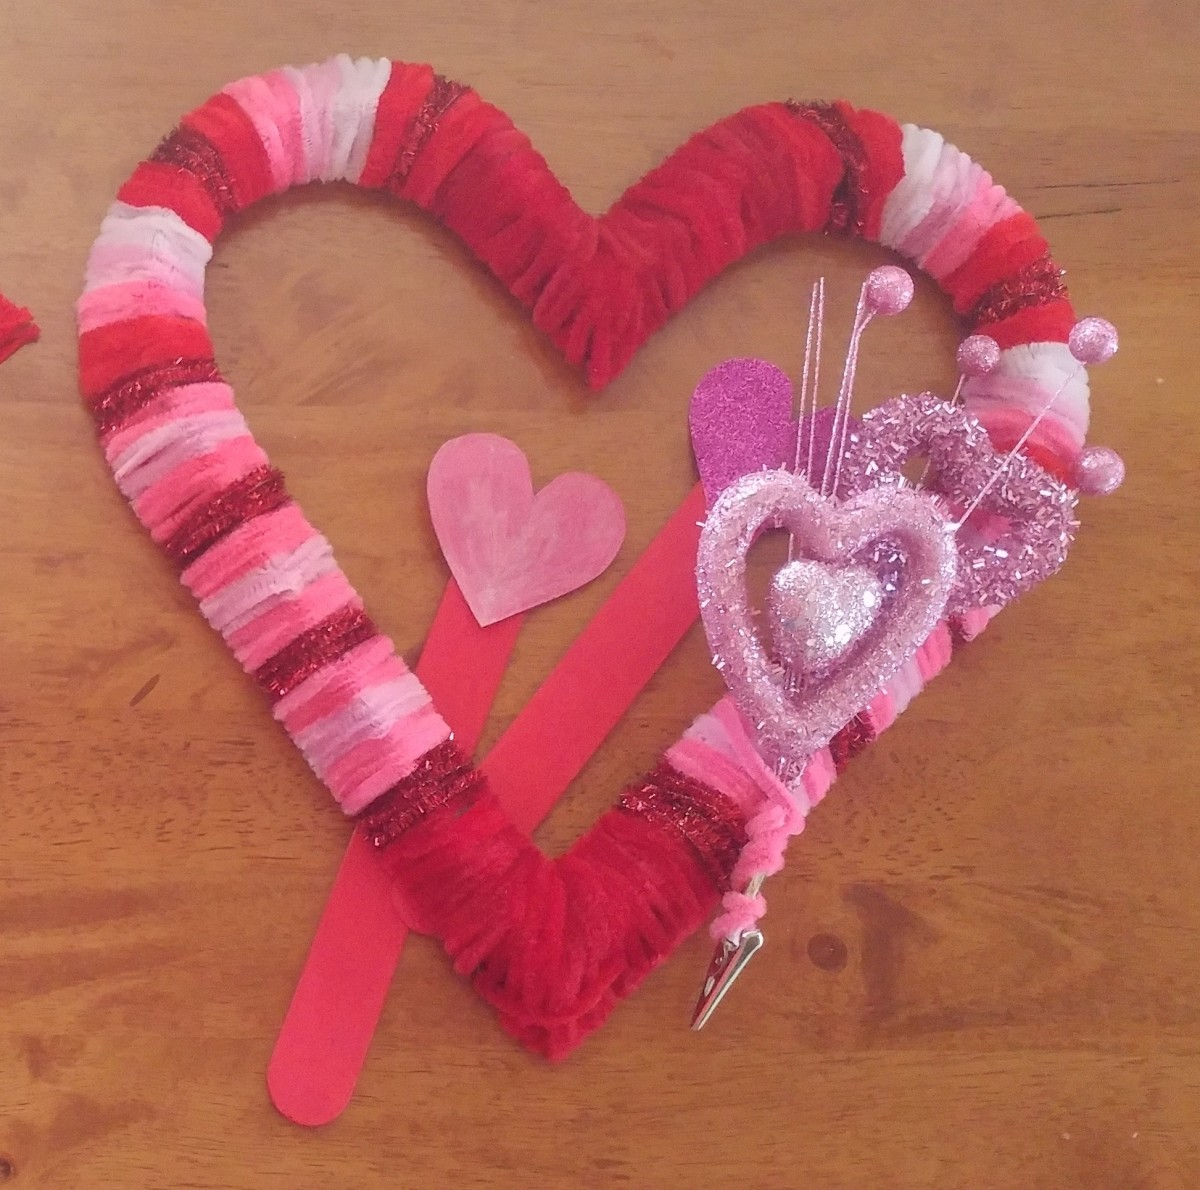 On this wreath I added shiny hearts. See's candy or lollipops can be added to the wreath as well!